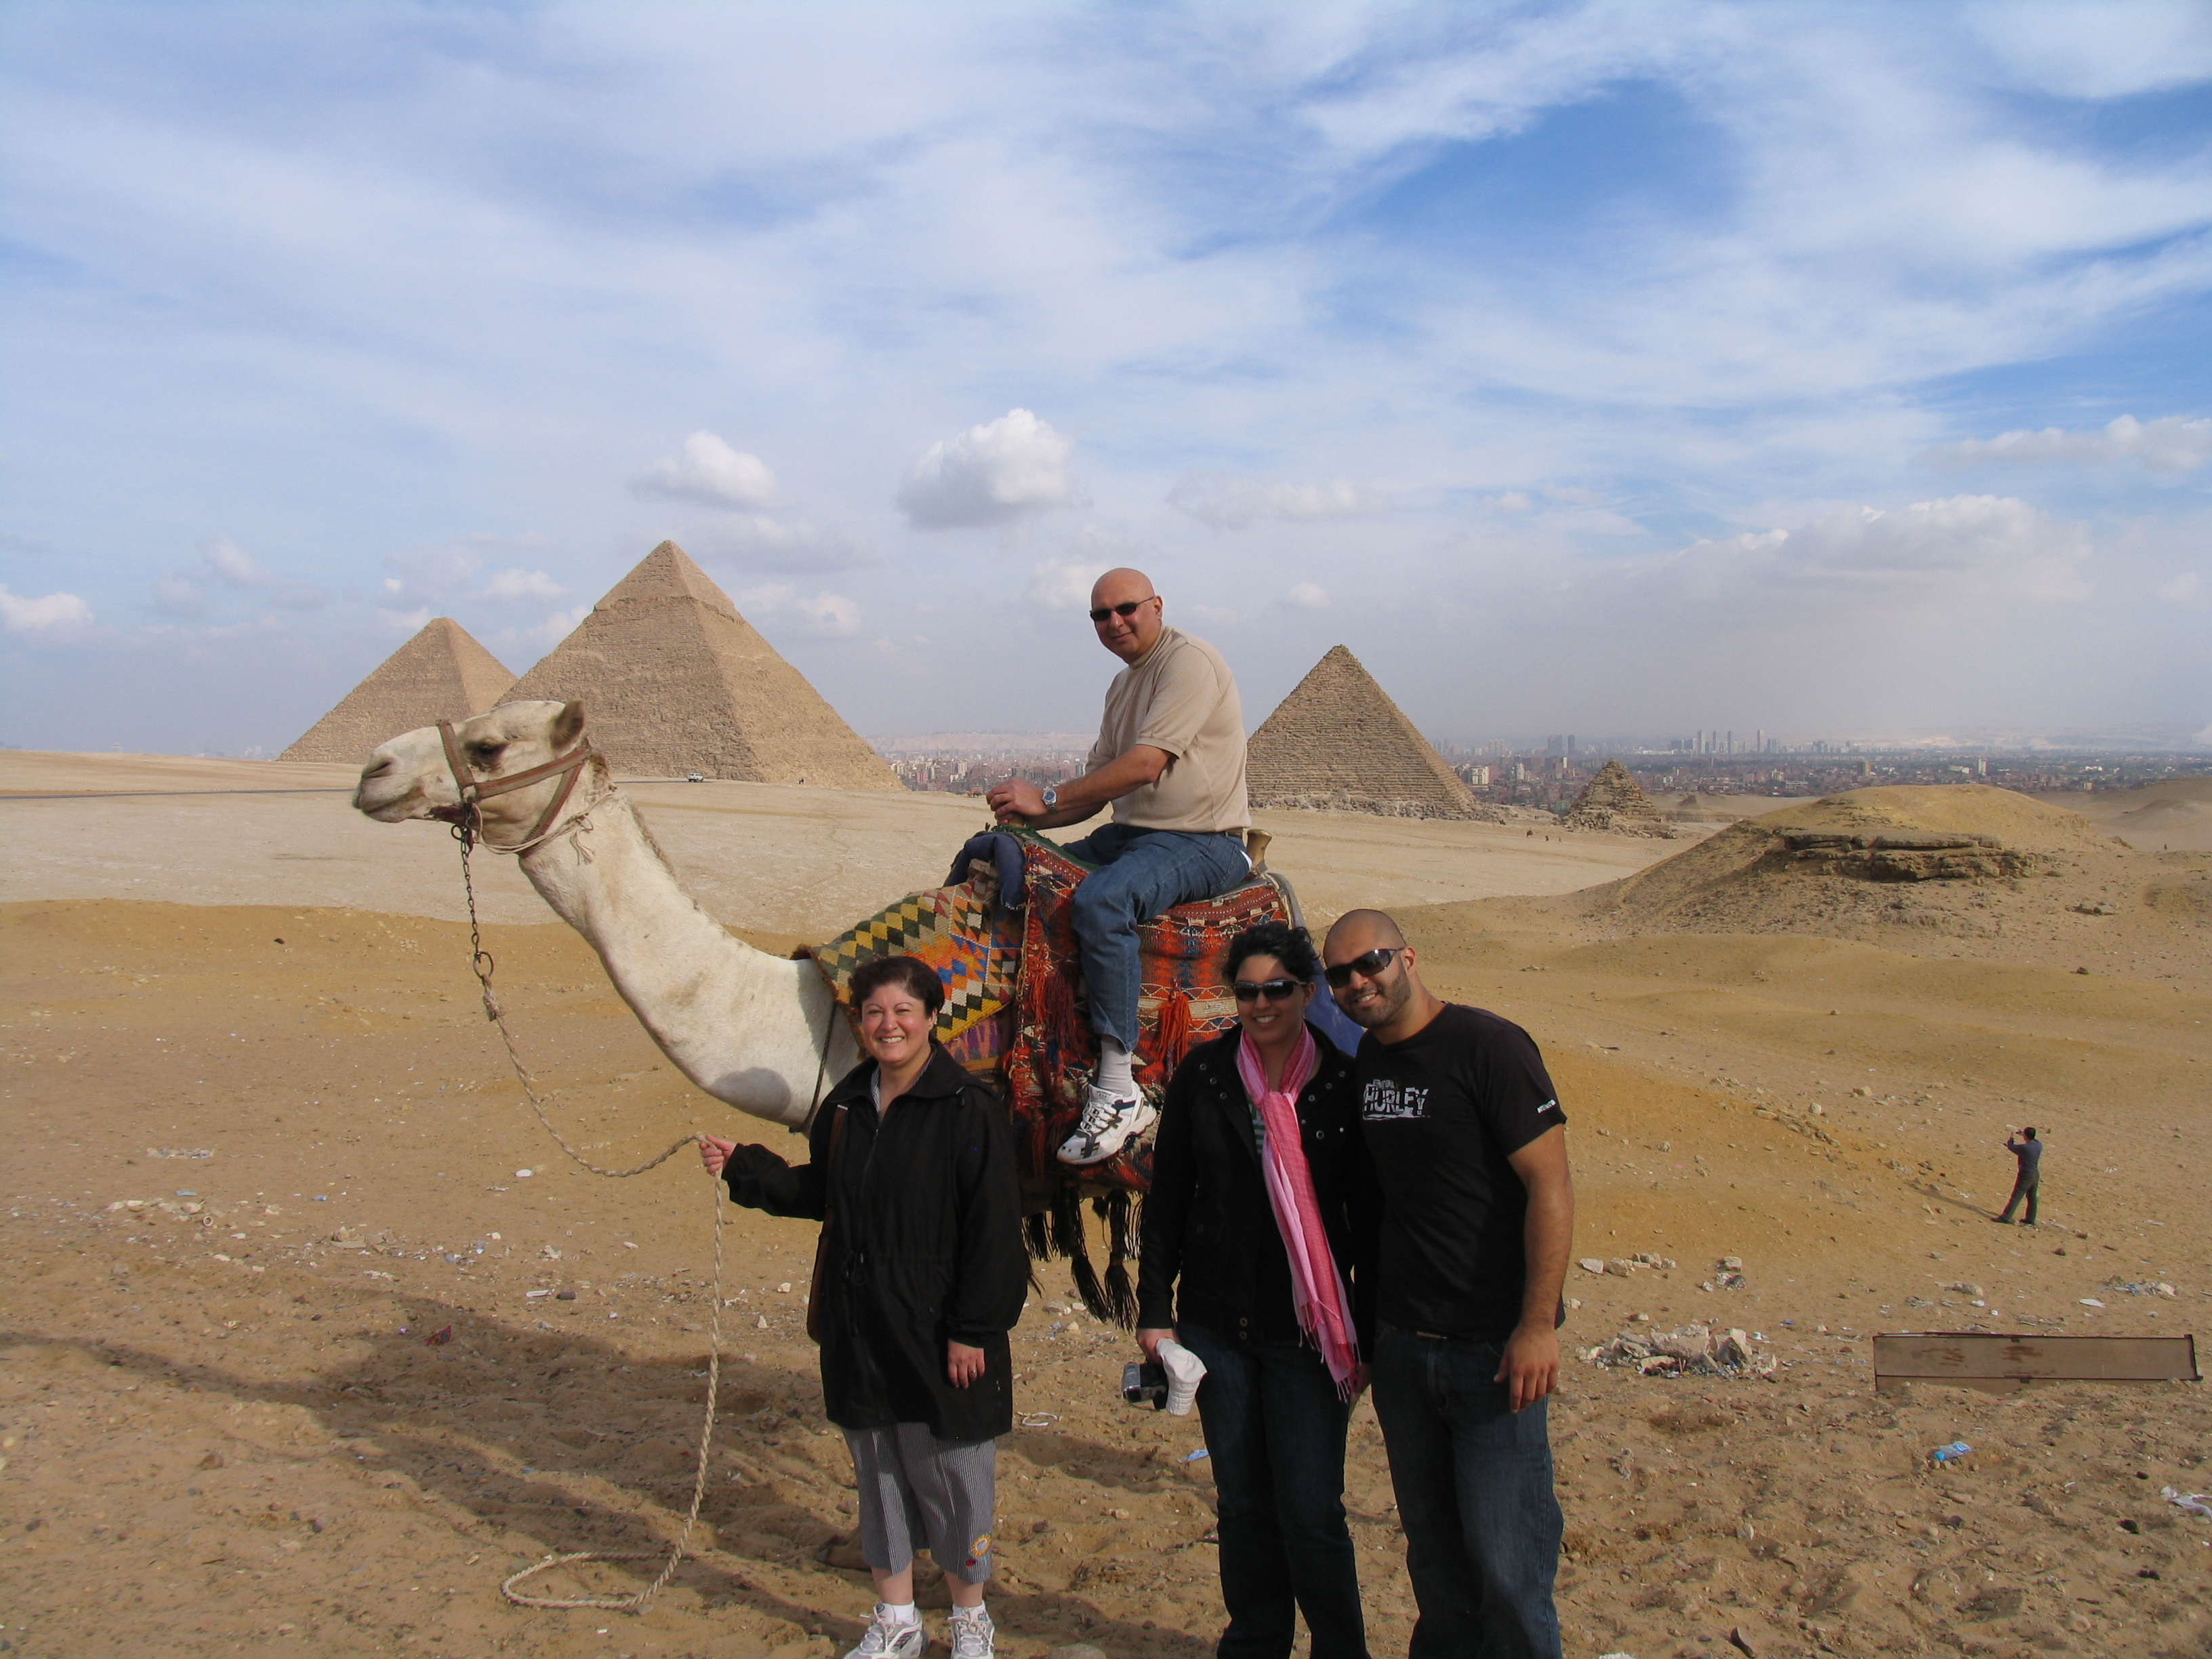 The picture shows Noorali on the camel at the Giza pyramids with Sabiya, Alia and Hussein in the foreground.